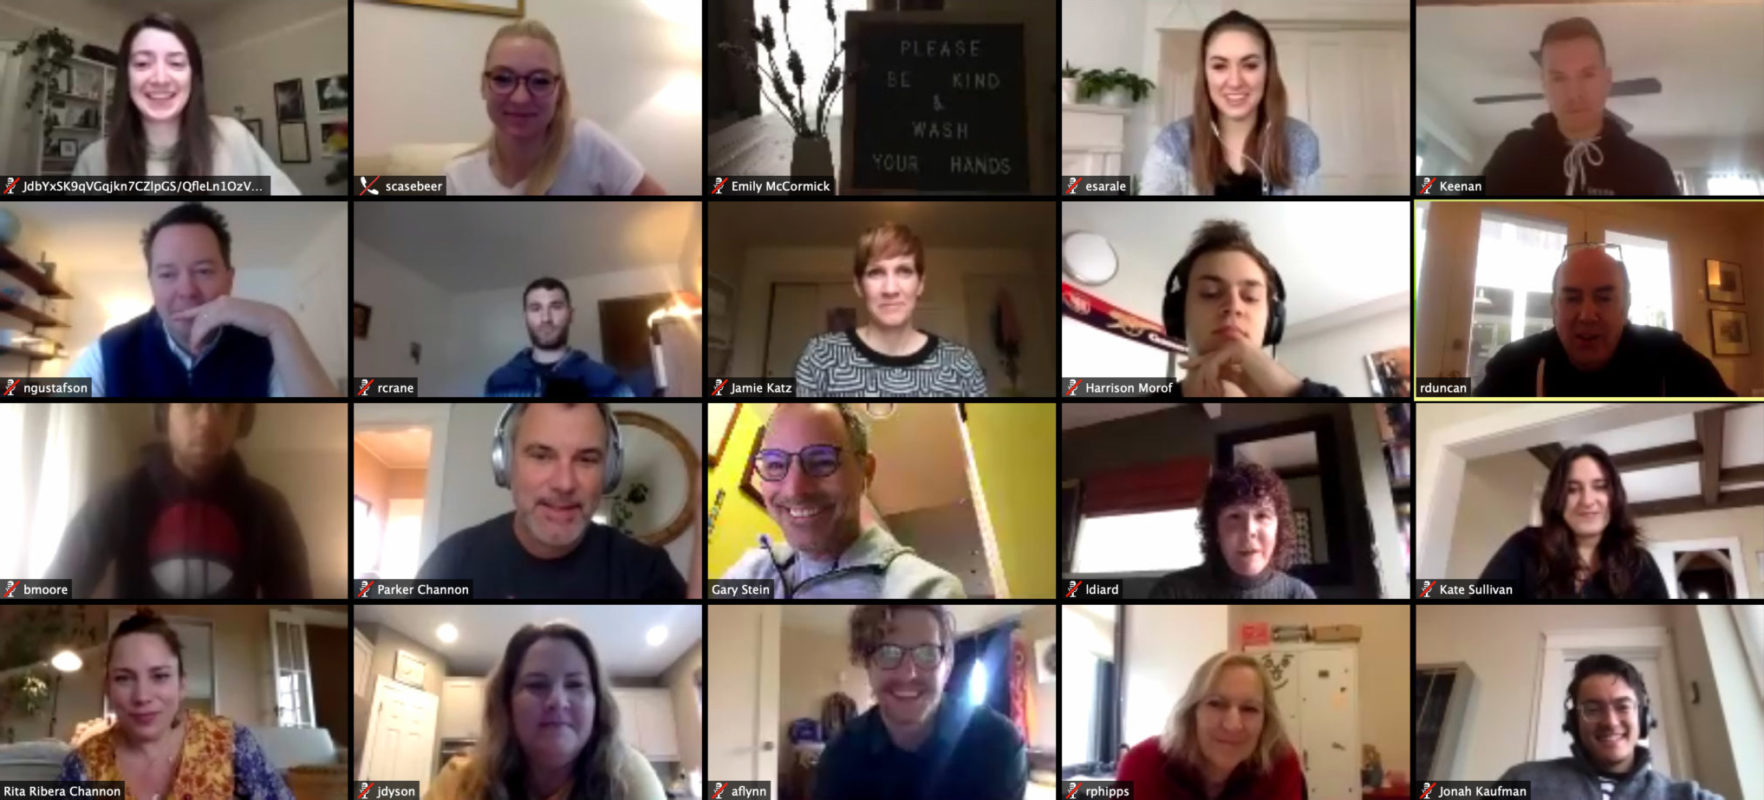 Grid image of 20 US employees on video conference call together. They are diverse in their age and their genders. They all appear smiling and some chatting like they are familiar with each other and enjoy working together.